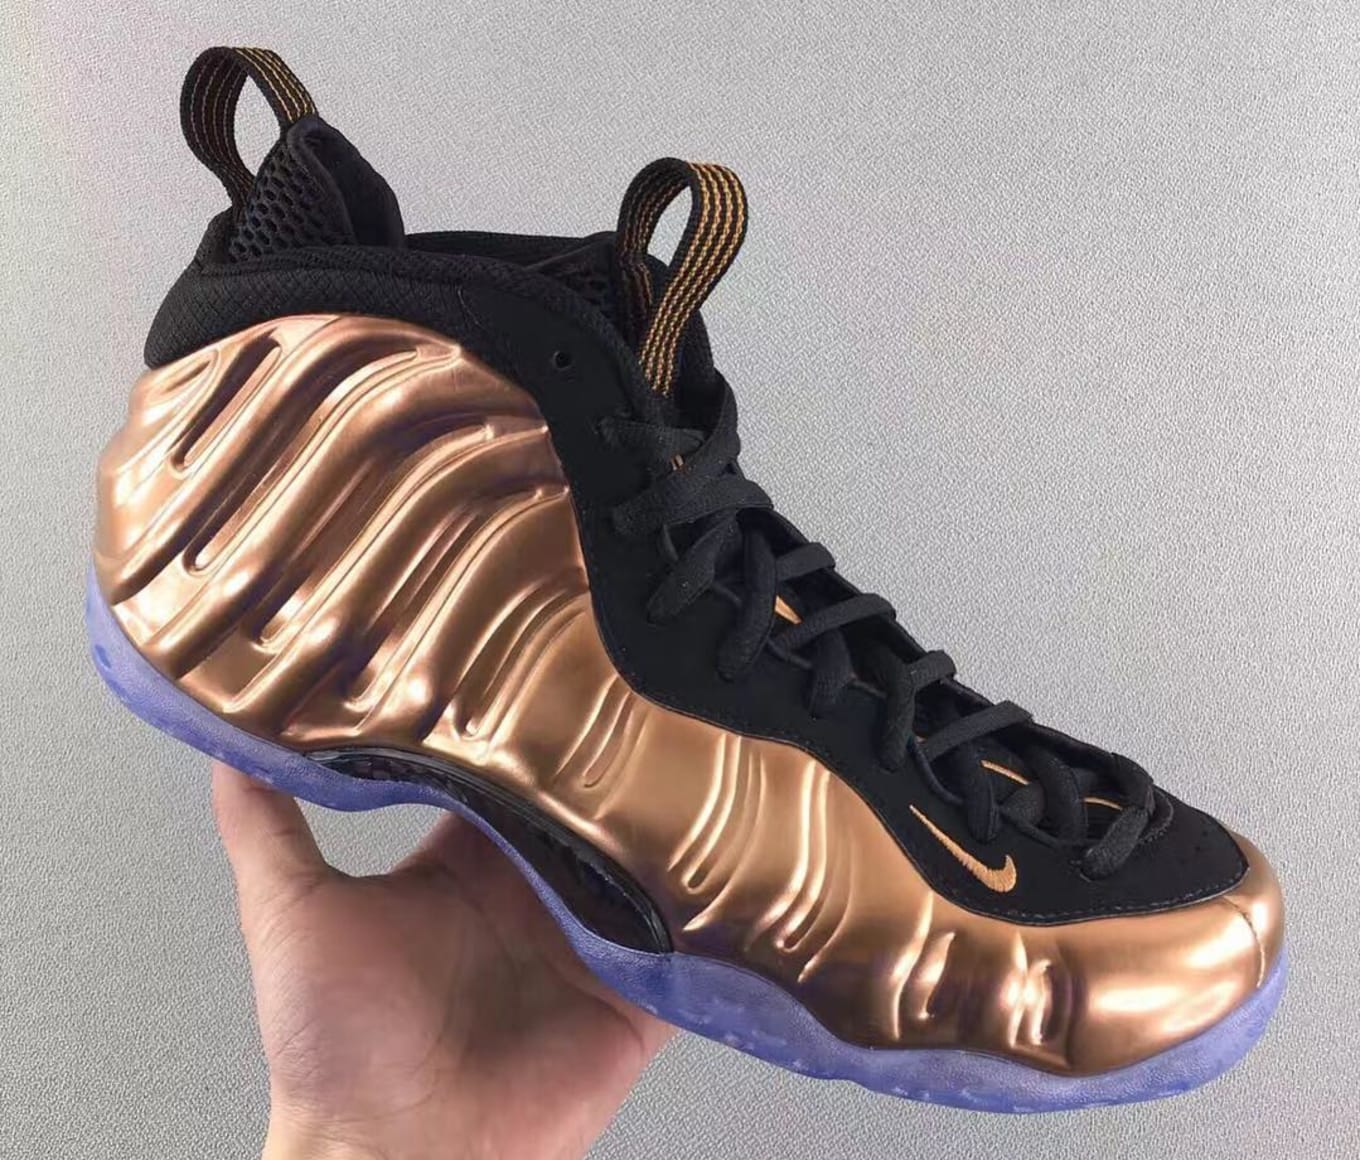 9b2dece37ab68 Nike Air Foamposite One Copper 2017 Release Date 314996-007